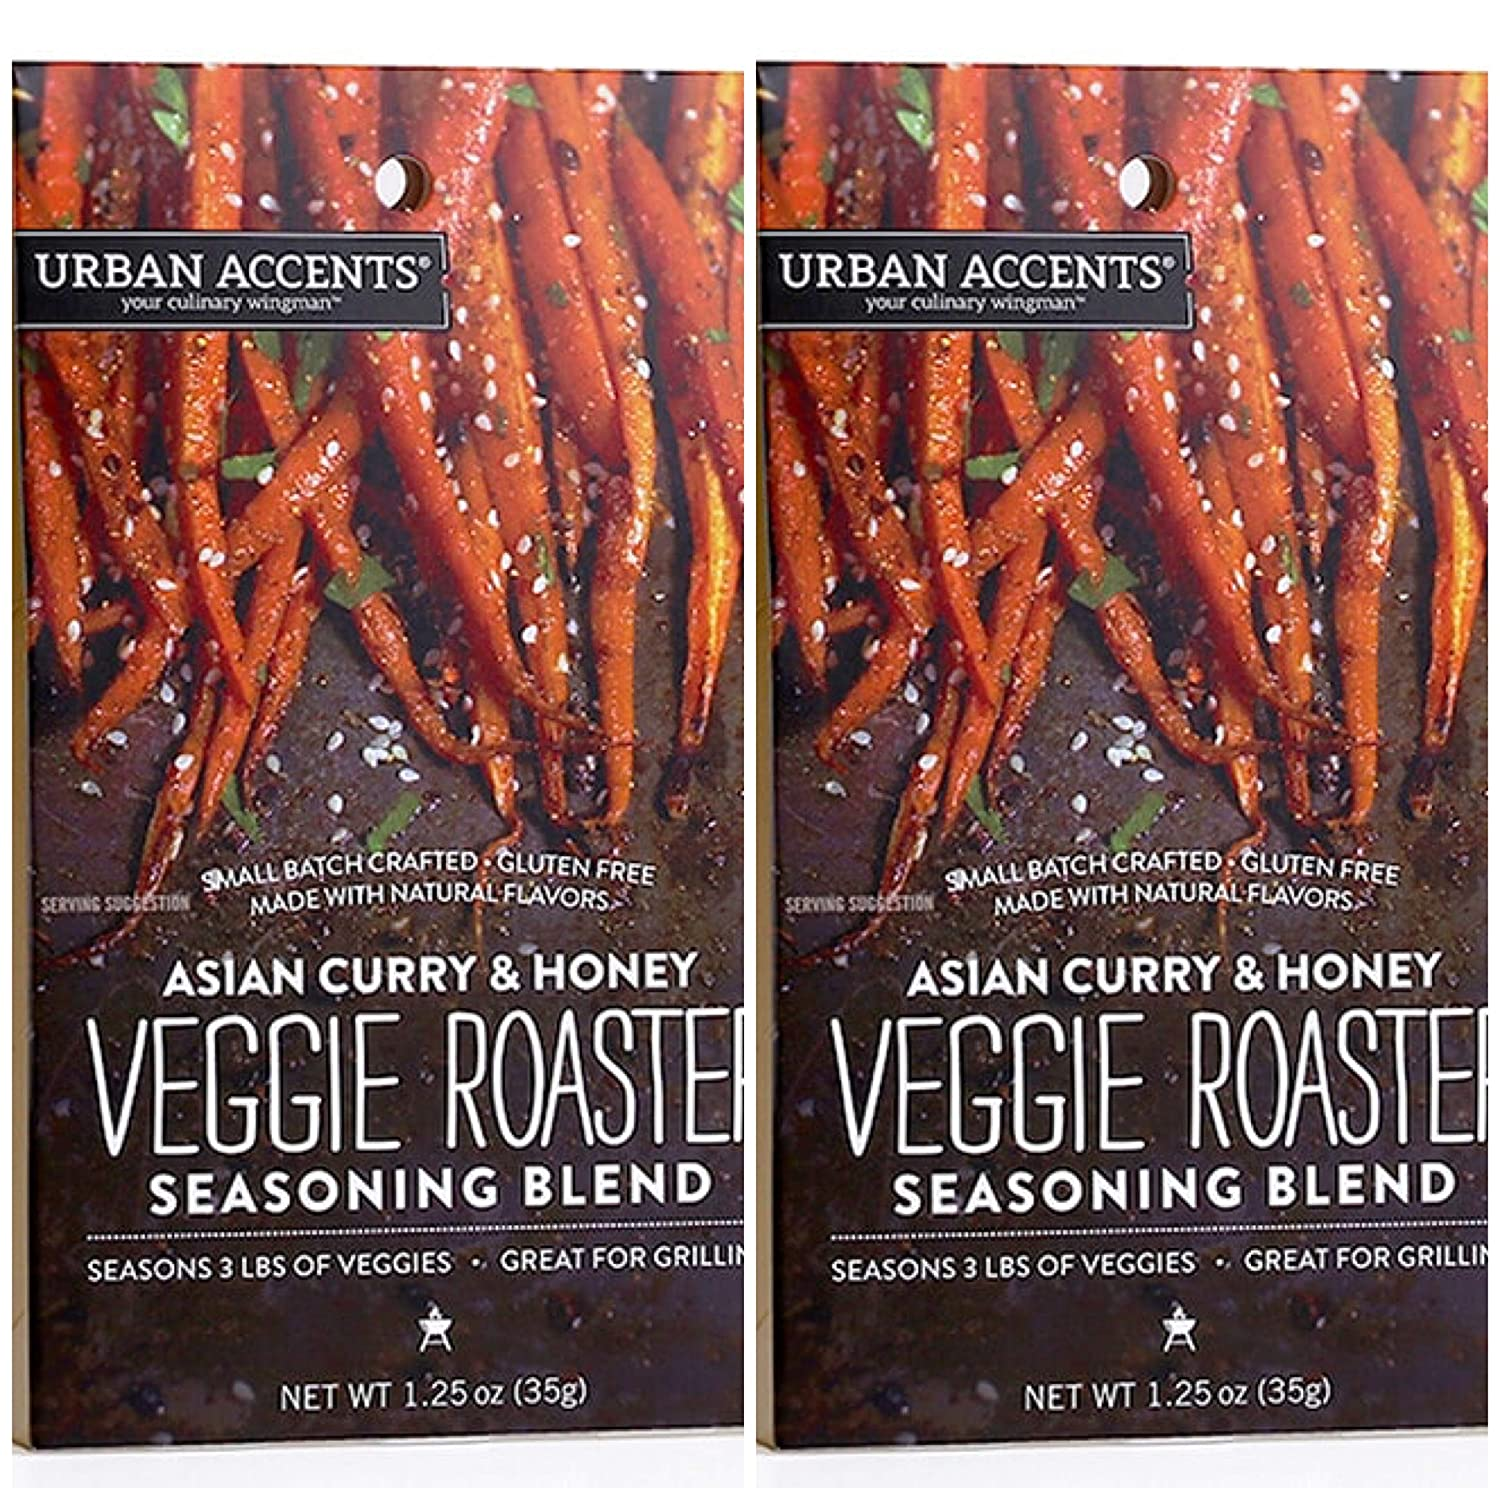 Urban Accents 2 Pack of Asian Curry & Honey Veggie Roaster Pack - GLUTEN FREE